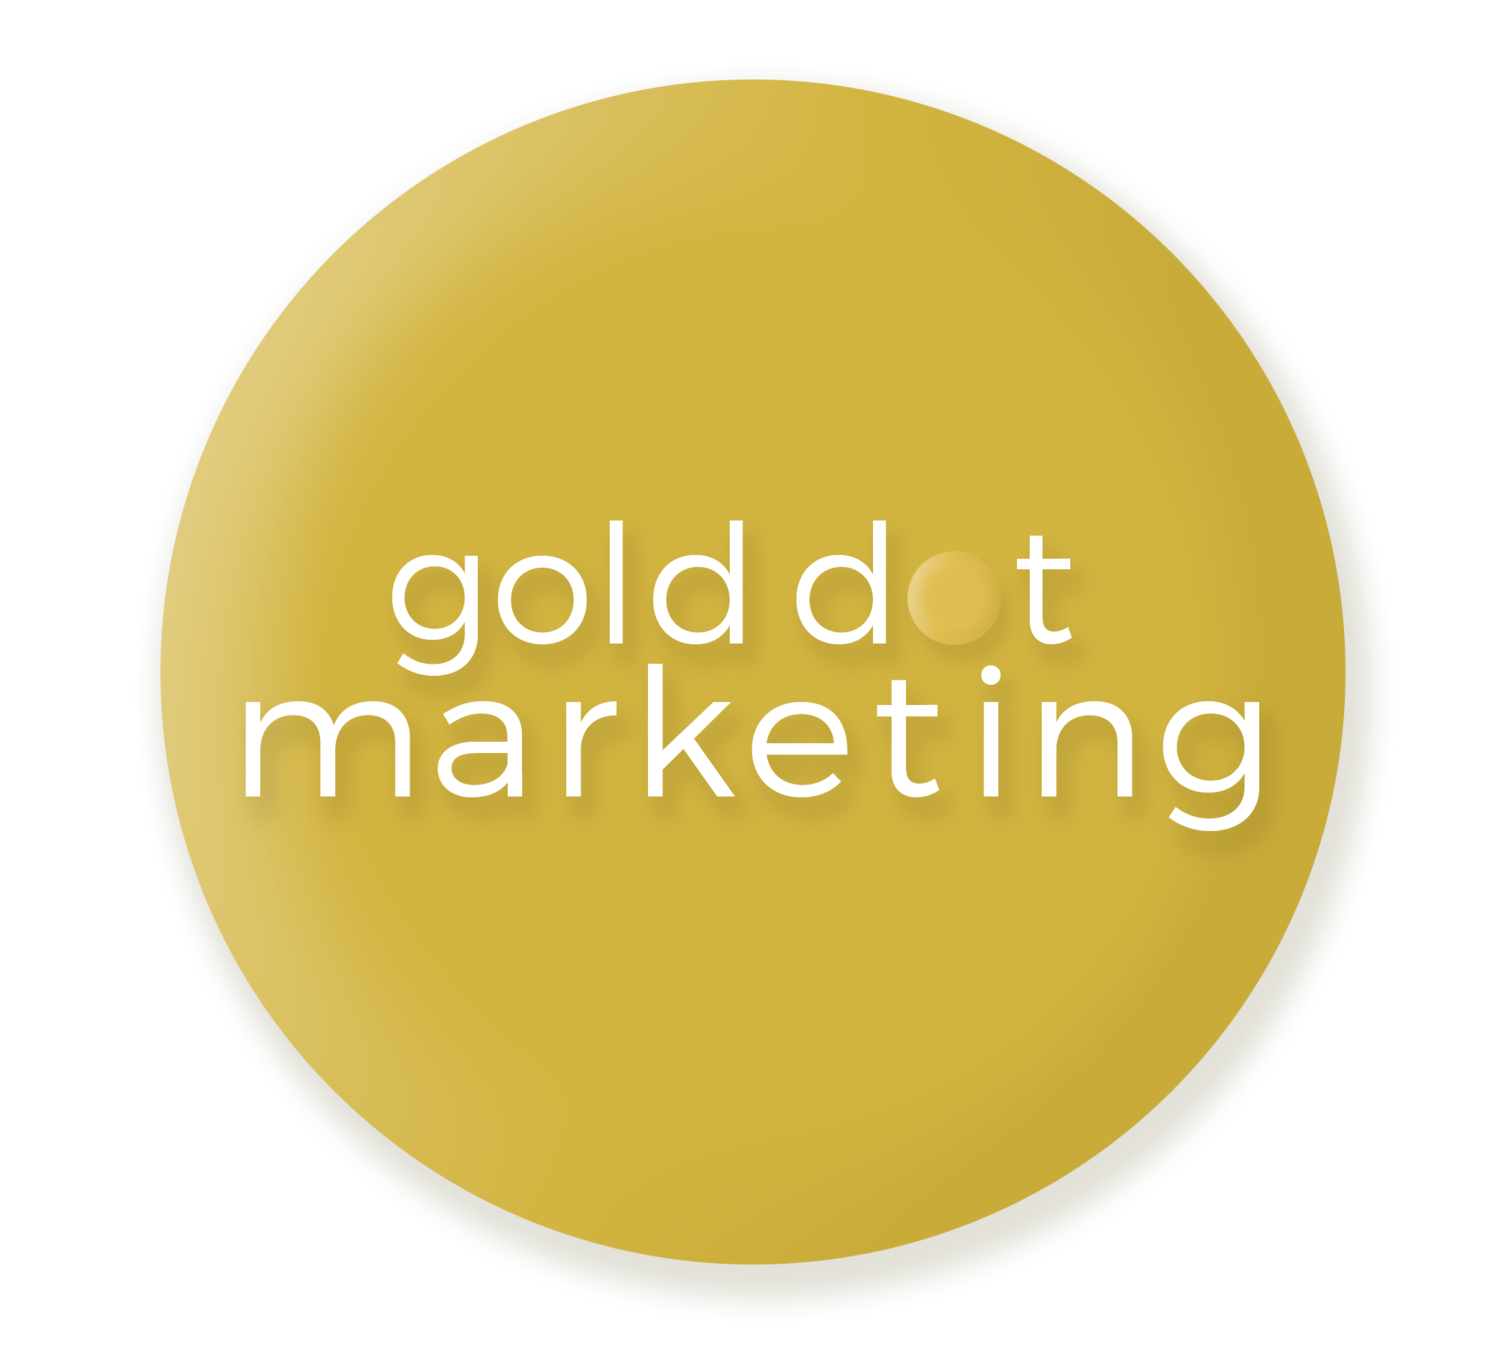 Gold Dot Marketing